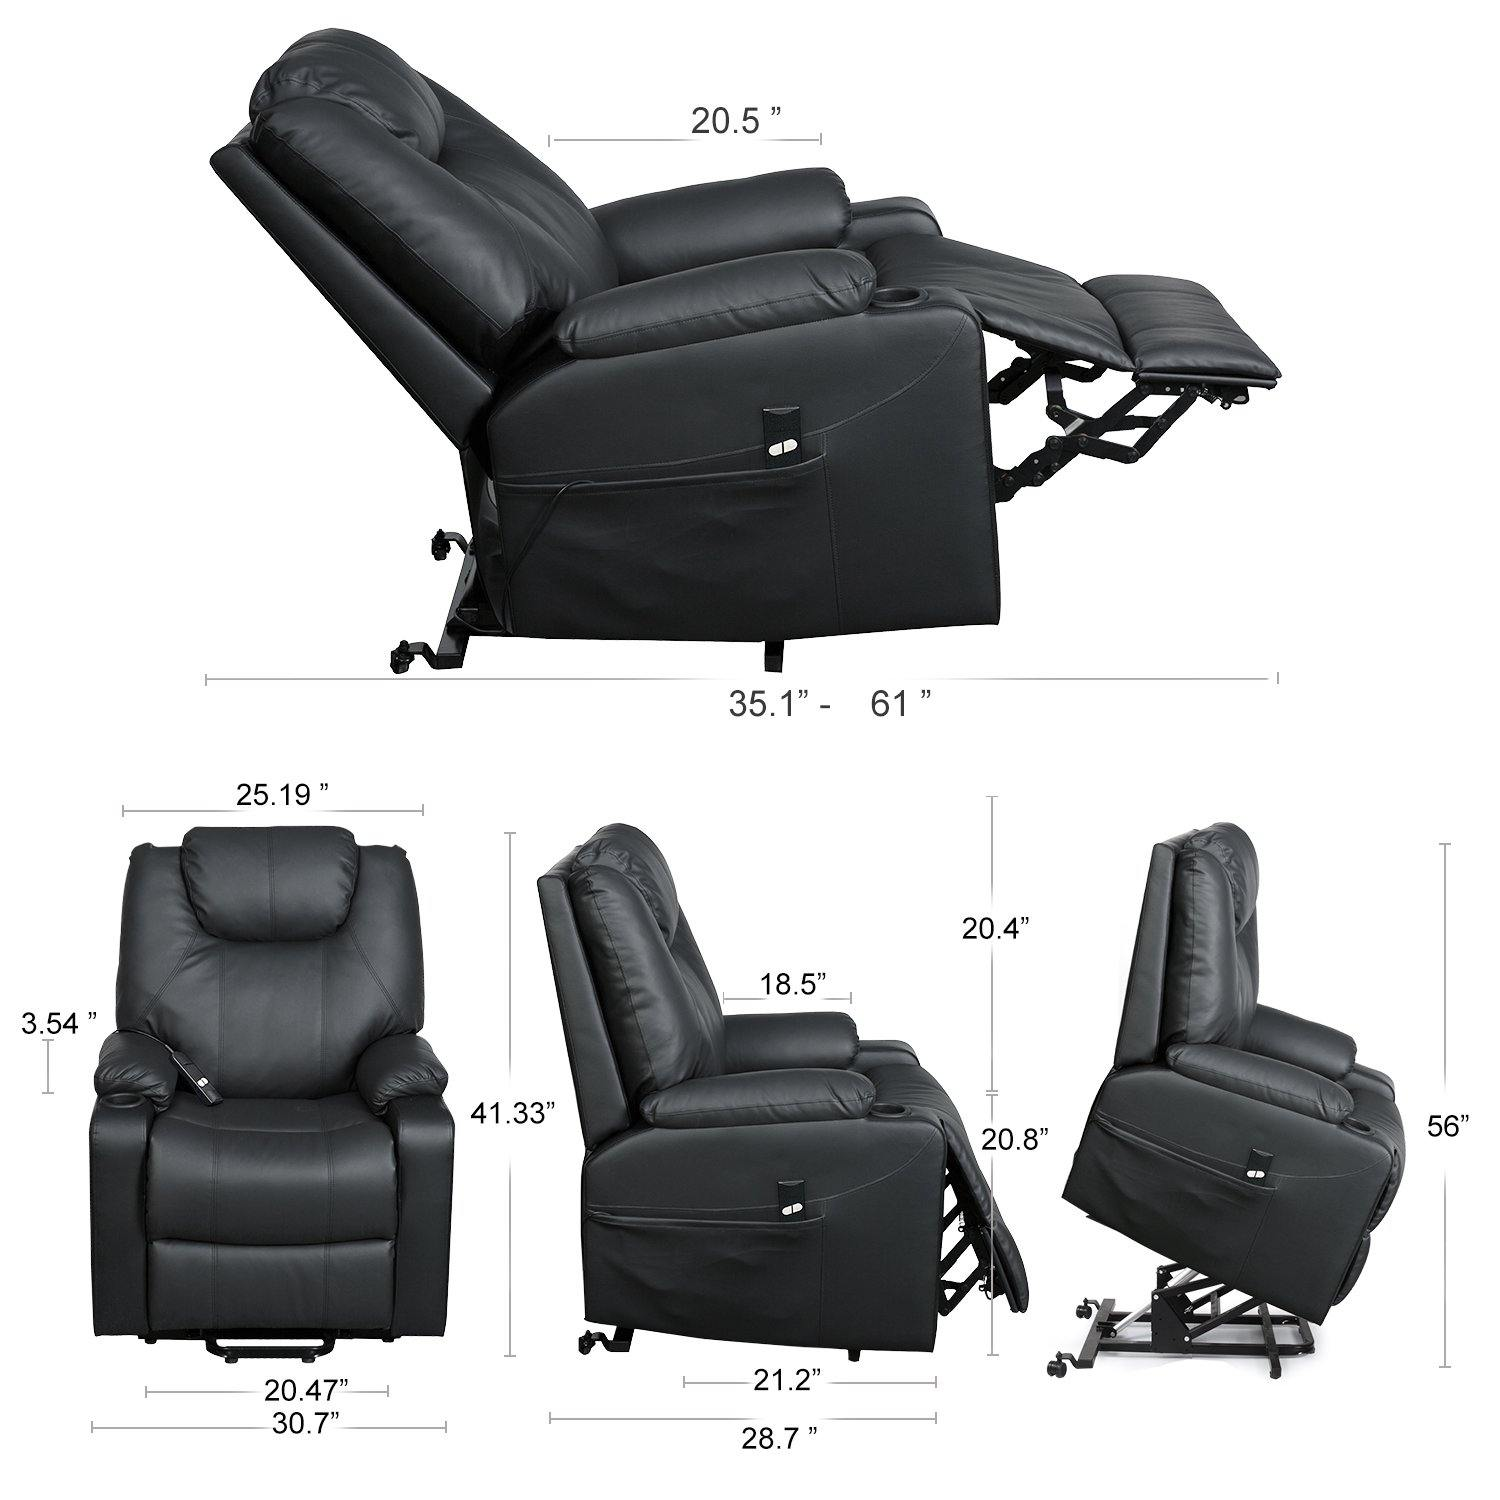 Milemont Recliner Chair, PU Leather, Ergonomic Lounge Chair with Cup Holders and Side Pockets, USB Ports, Black